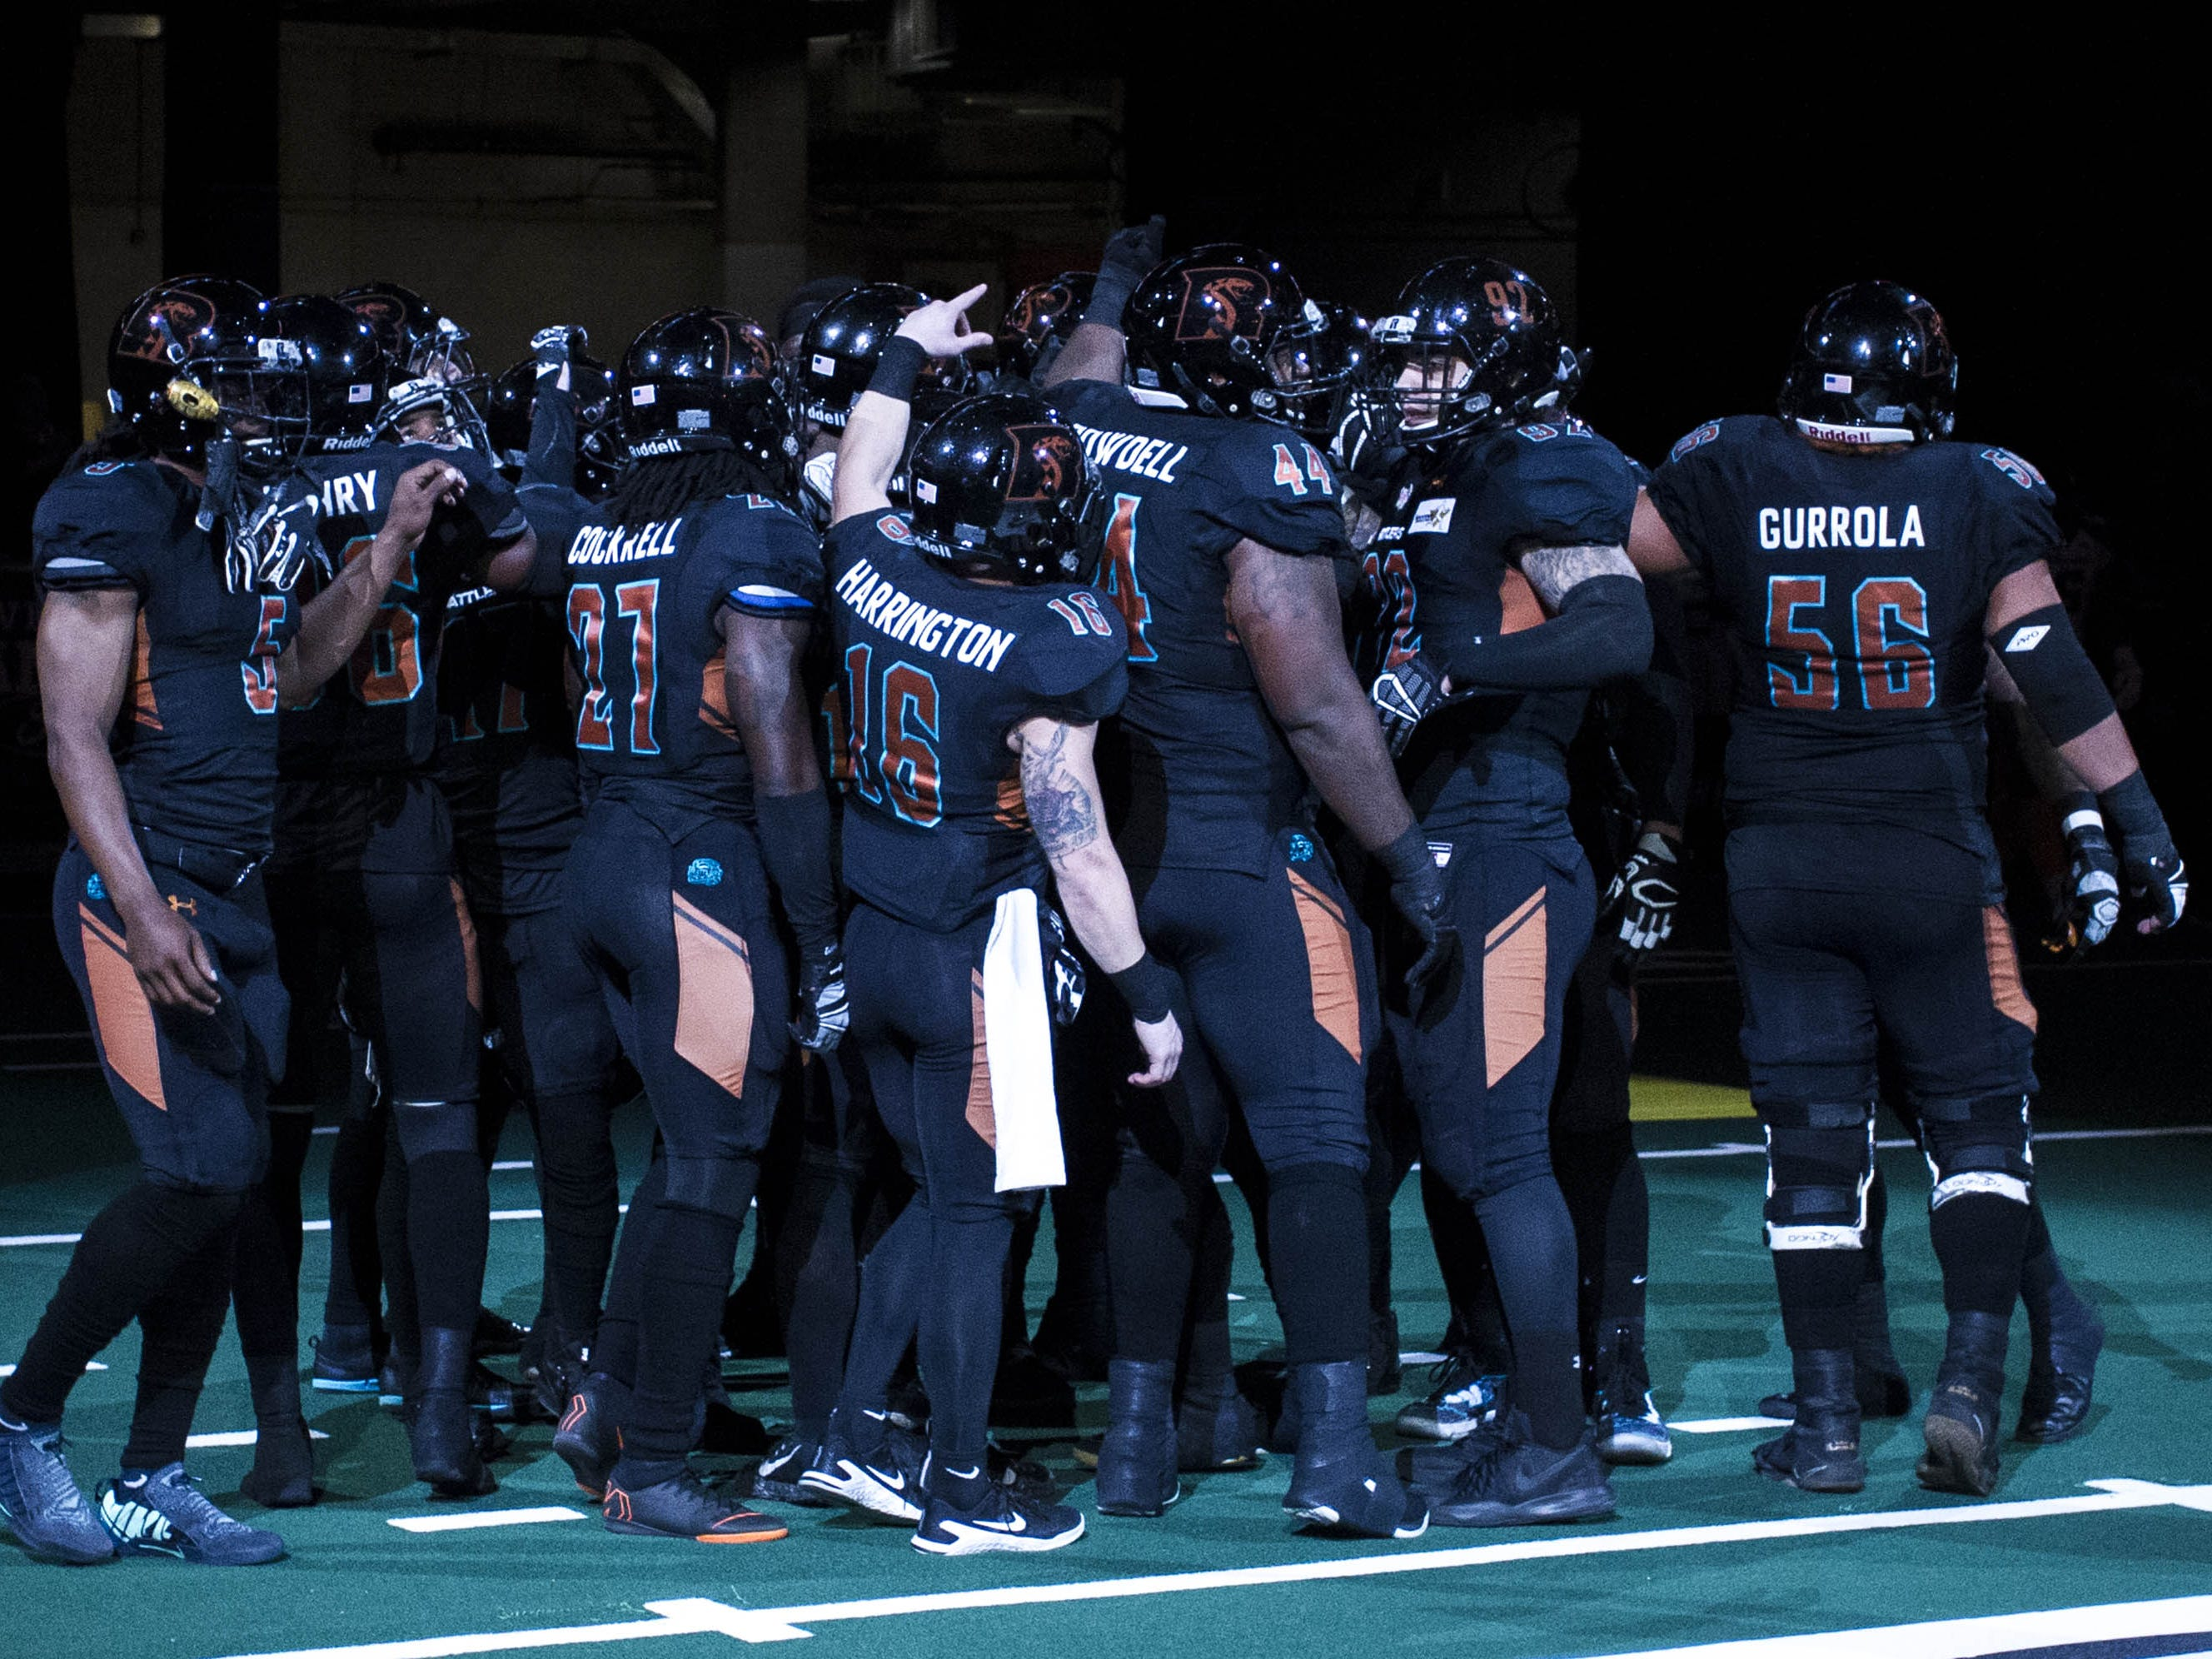 Arizona Rattlers players huddle before their game against the Cedar Rapids River Kings at Talking Stick Resort Arena in Phoenix, Sunday, March 3, 2019.